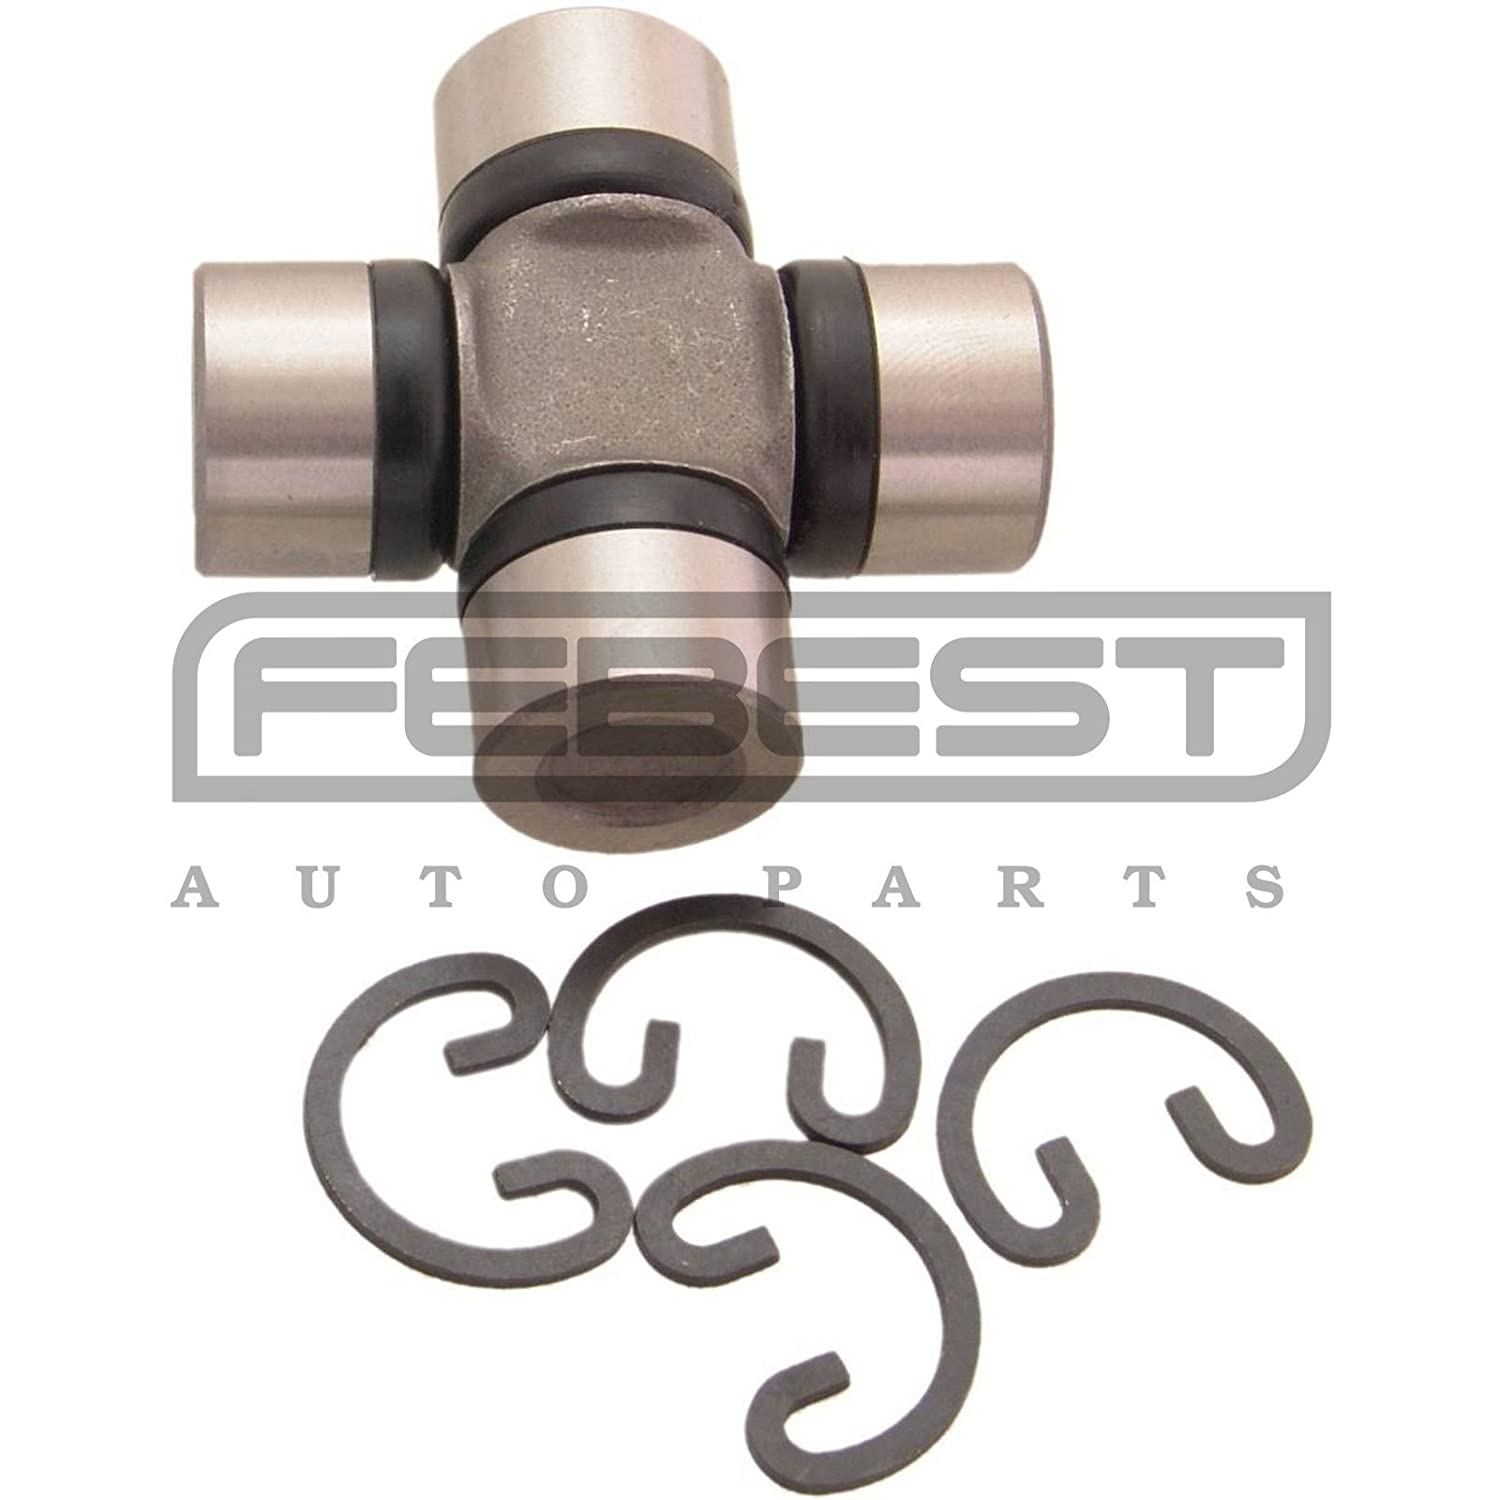 UNIVERSAL JOINT 22.06X57.5. Febest: AST-24